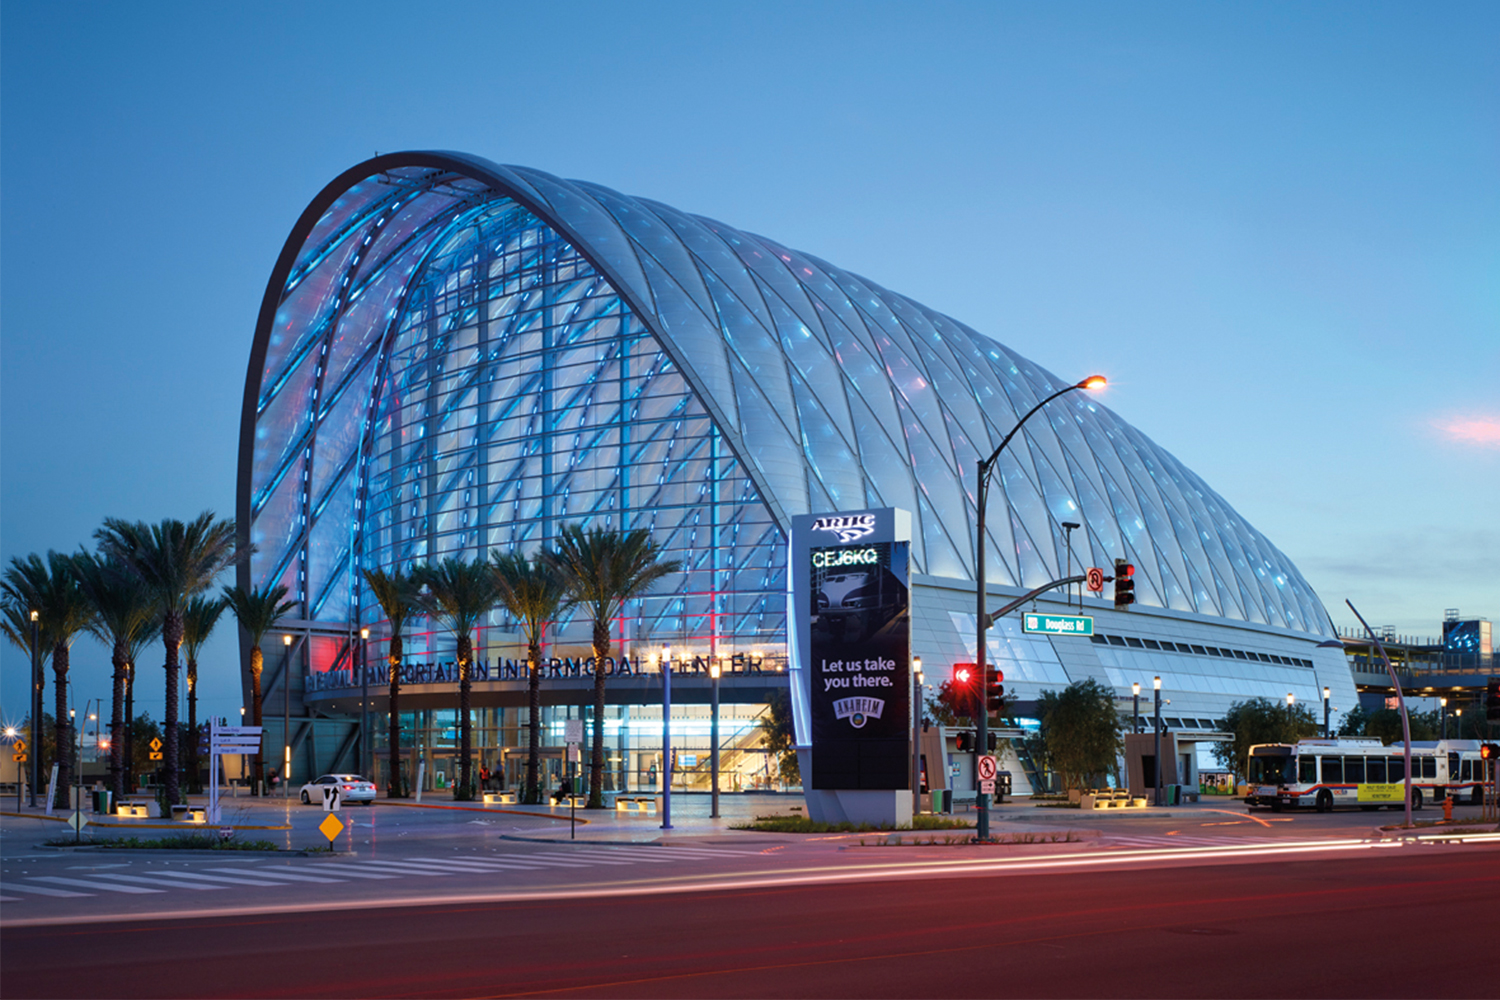 Anaheim Regional Transportation Intermodal Center Artic